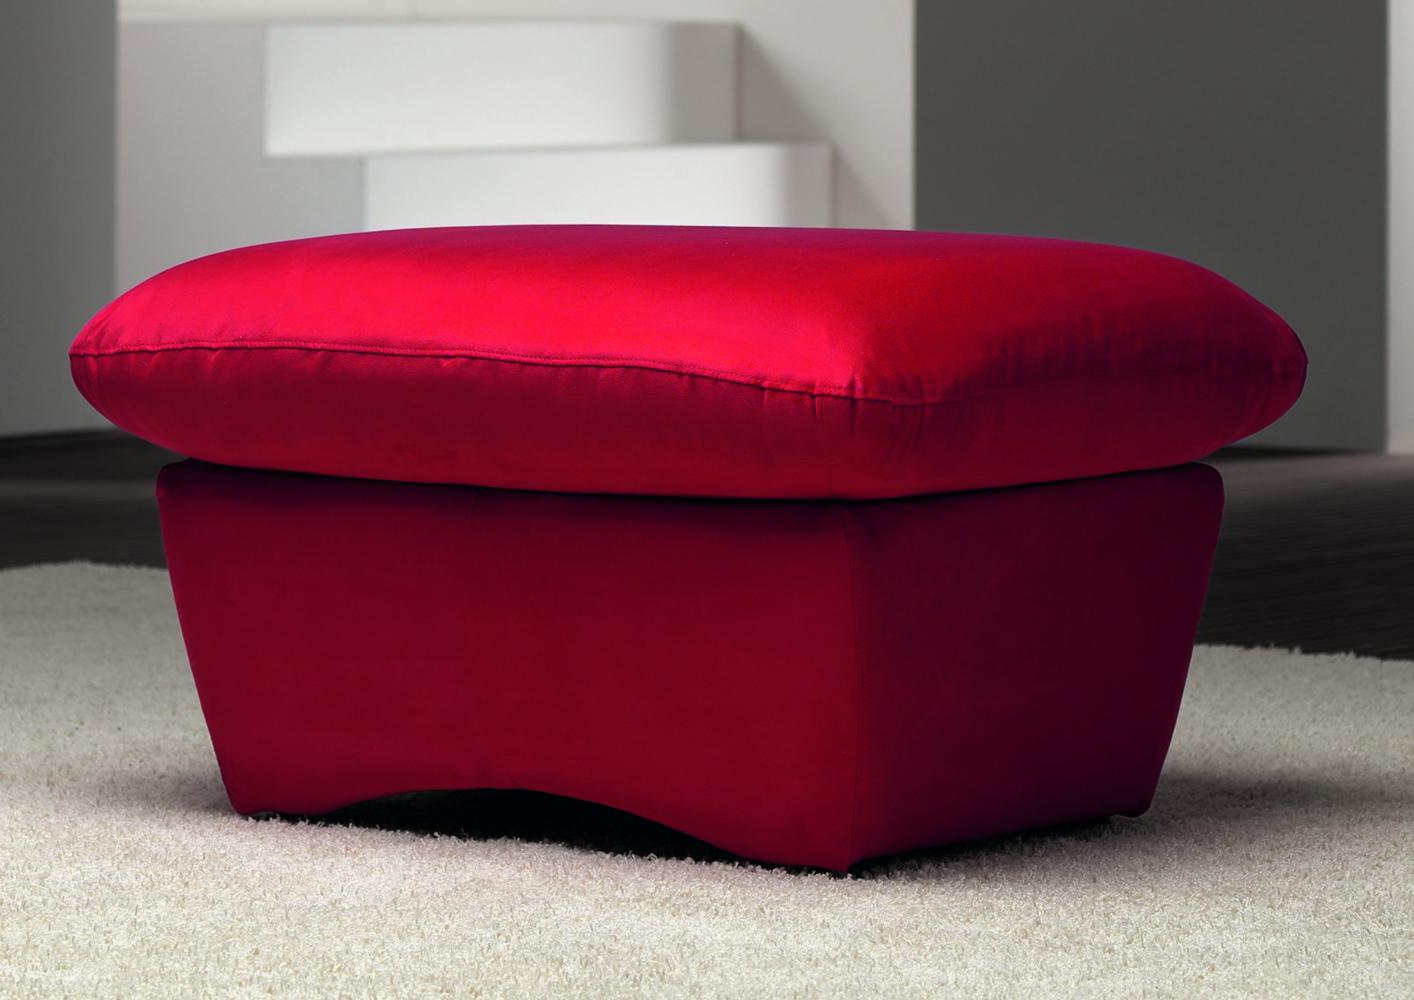 acheter votre pouf rectangulaire option bicolore chez simeuble. Black Bedroom Furniture Sets. Home Design Ideas